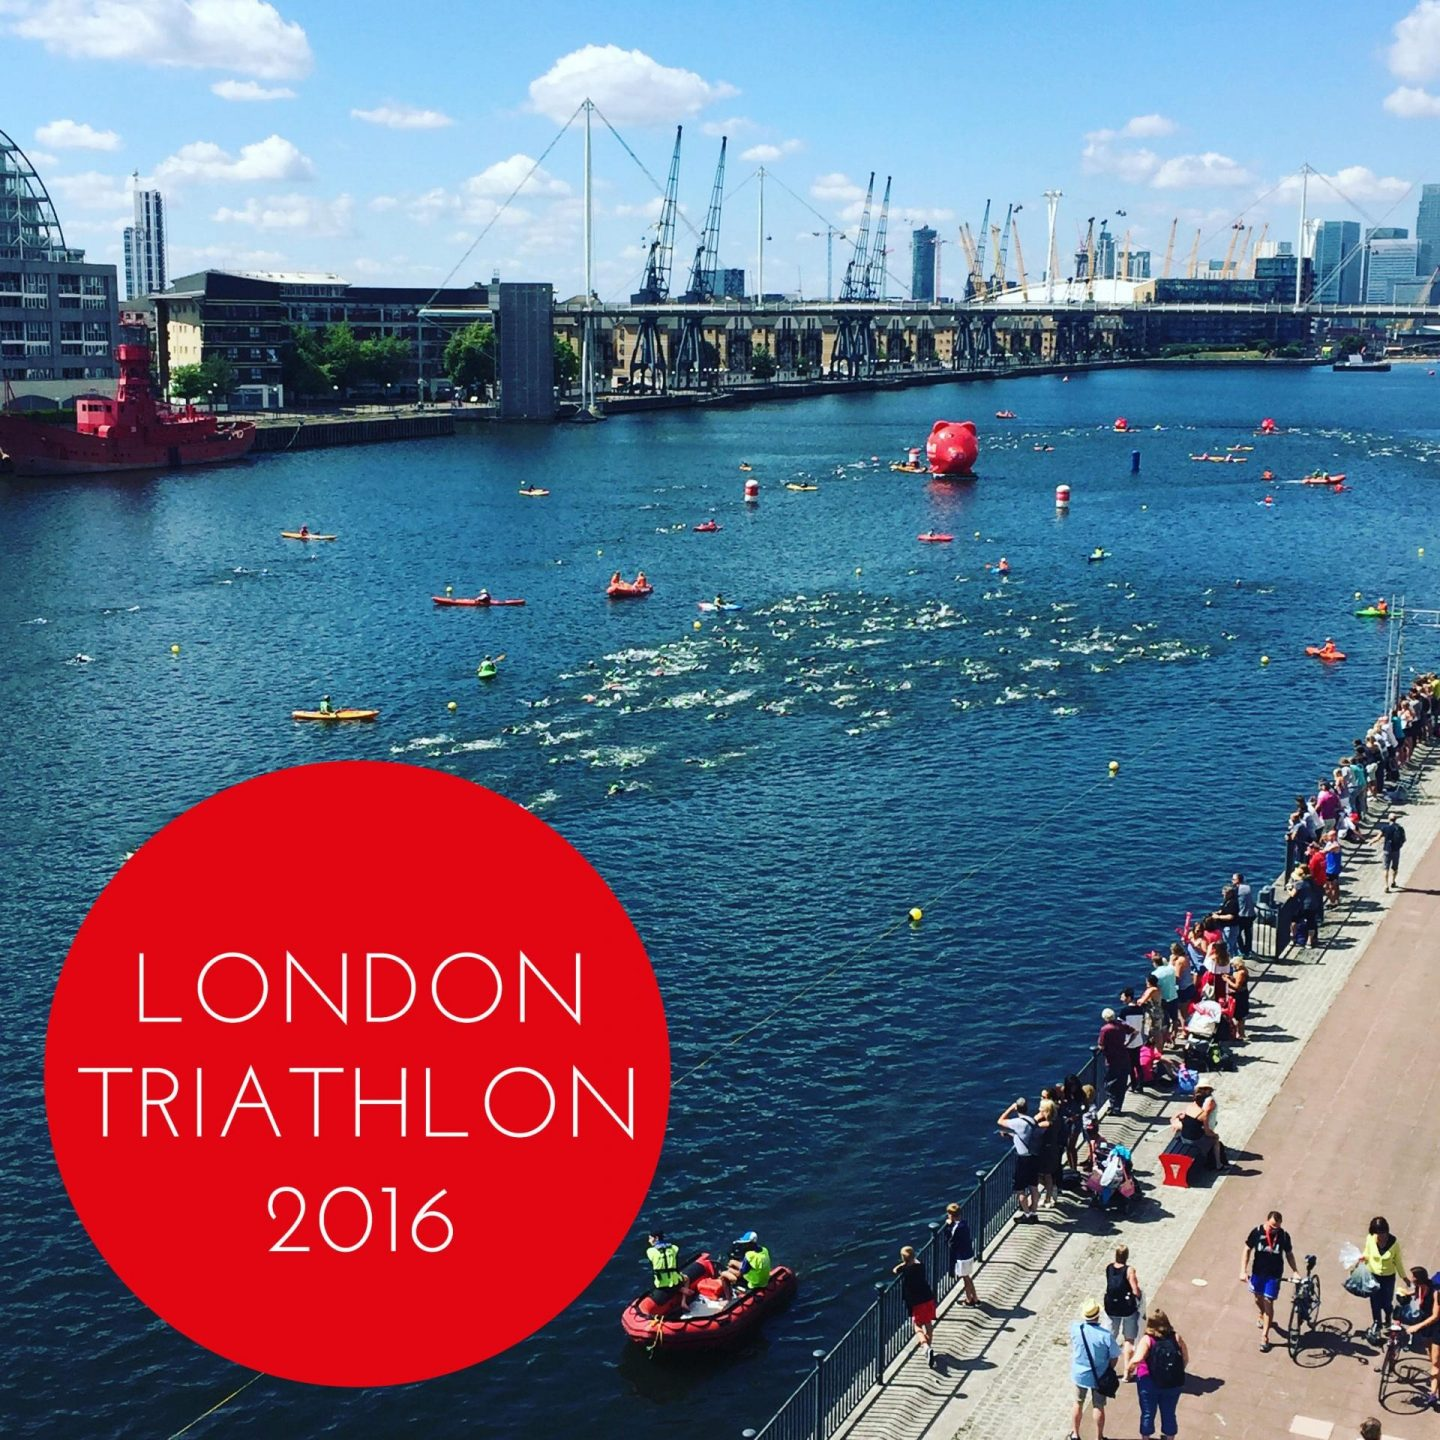 London Triathlon 2016